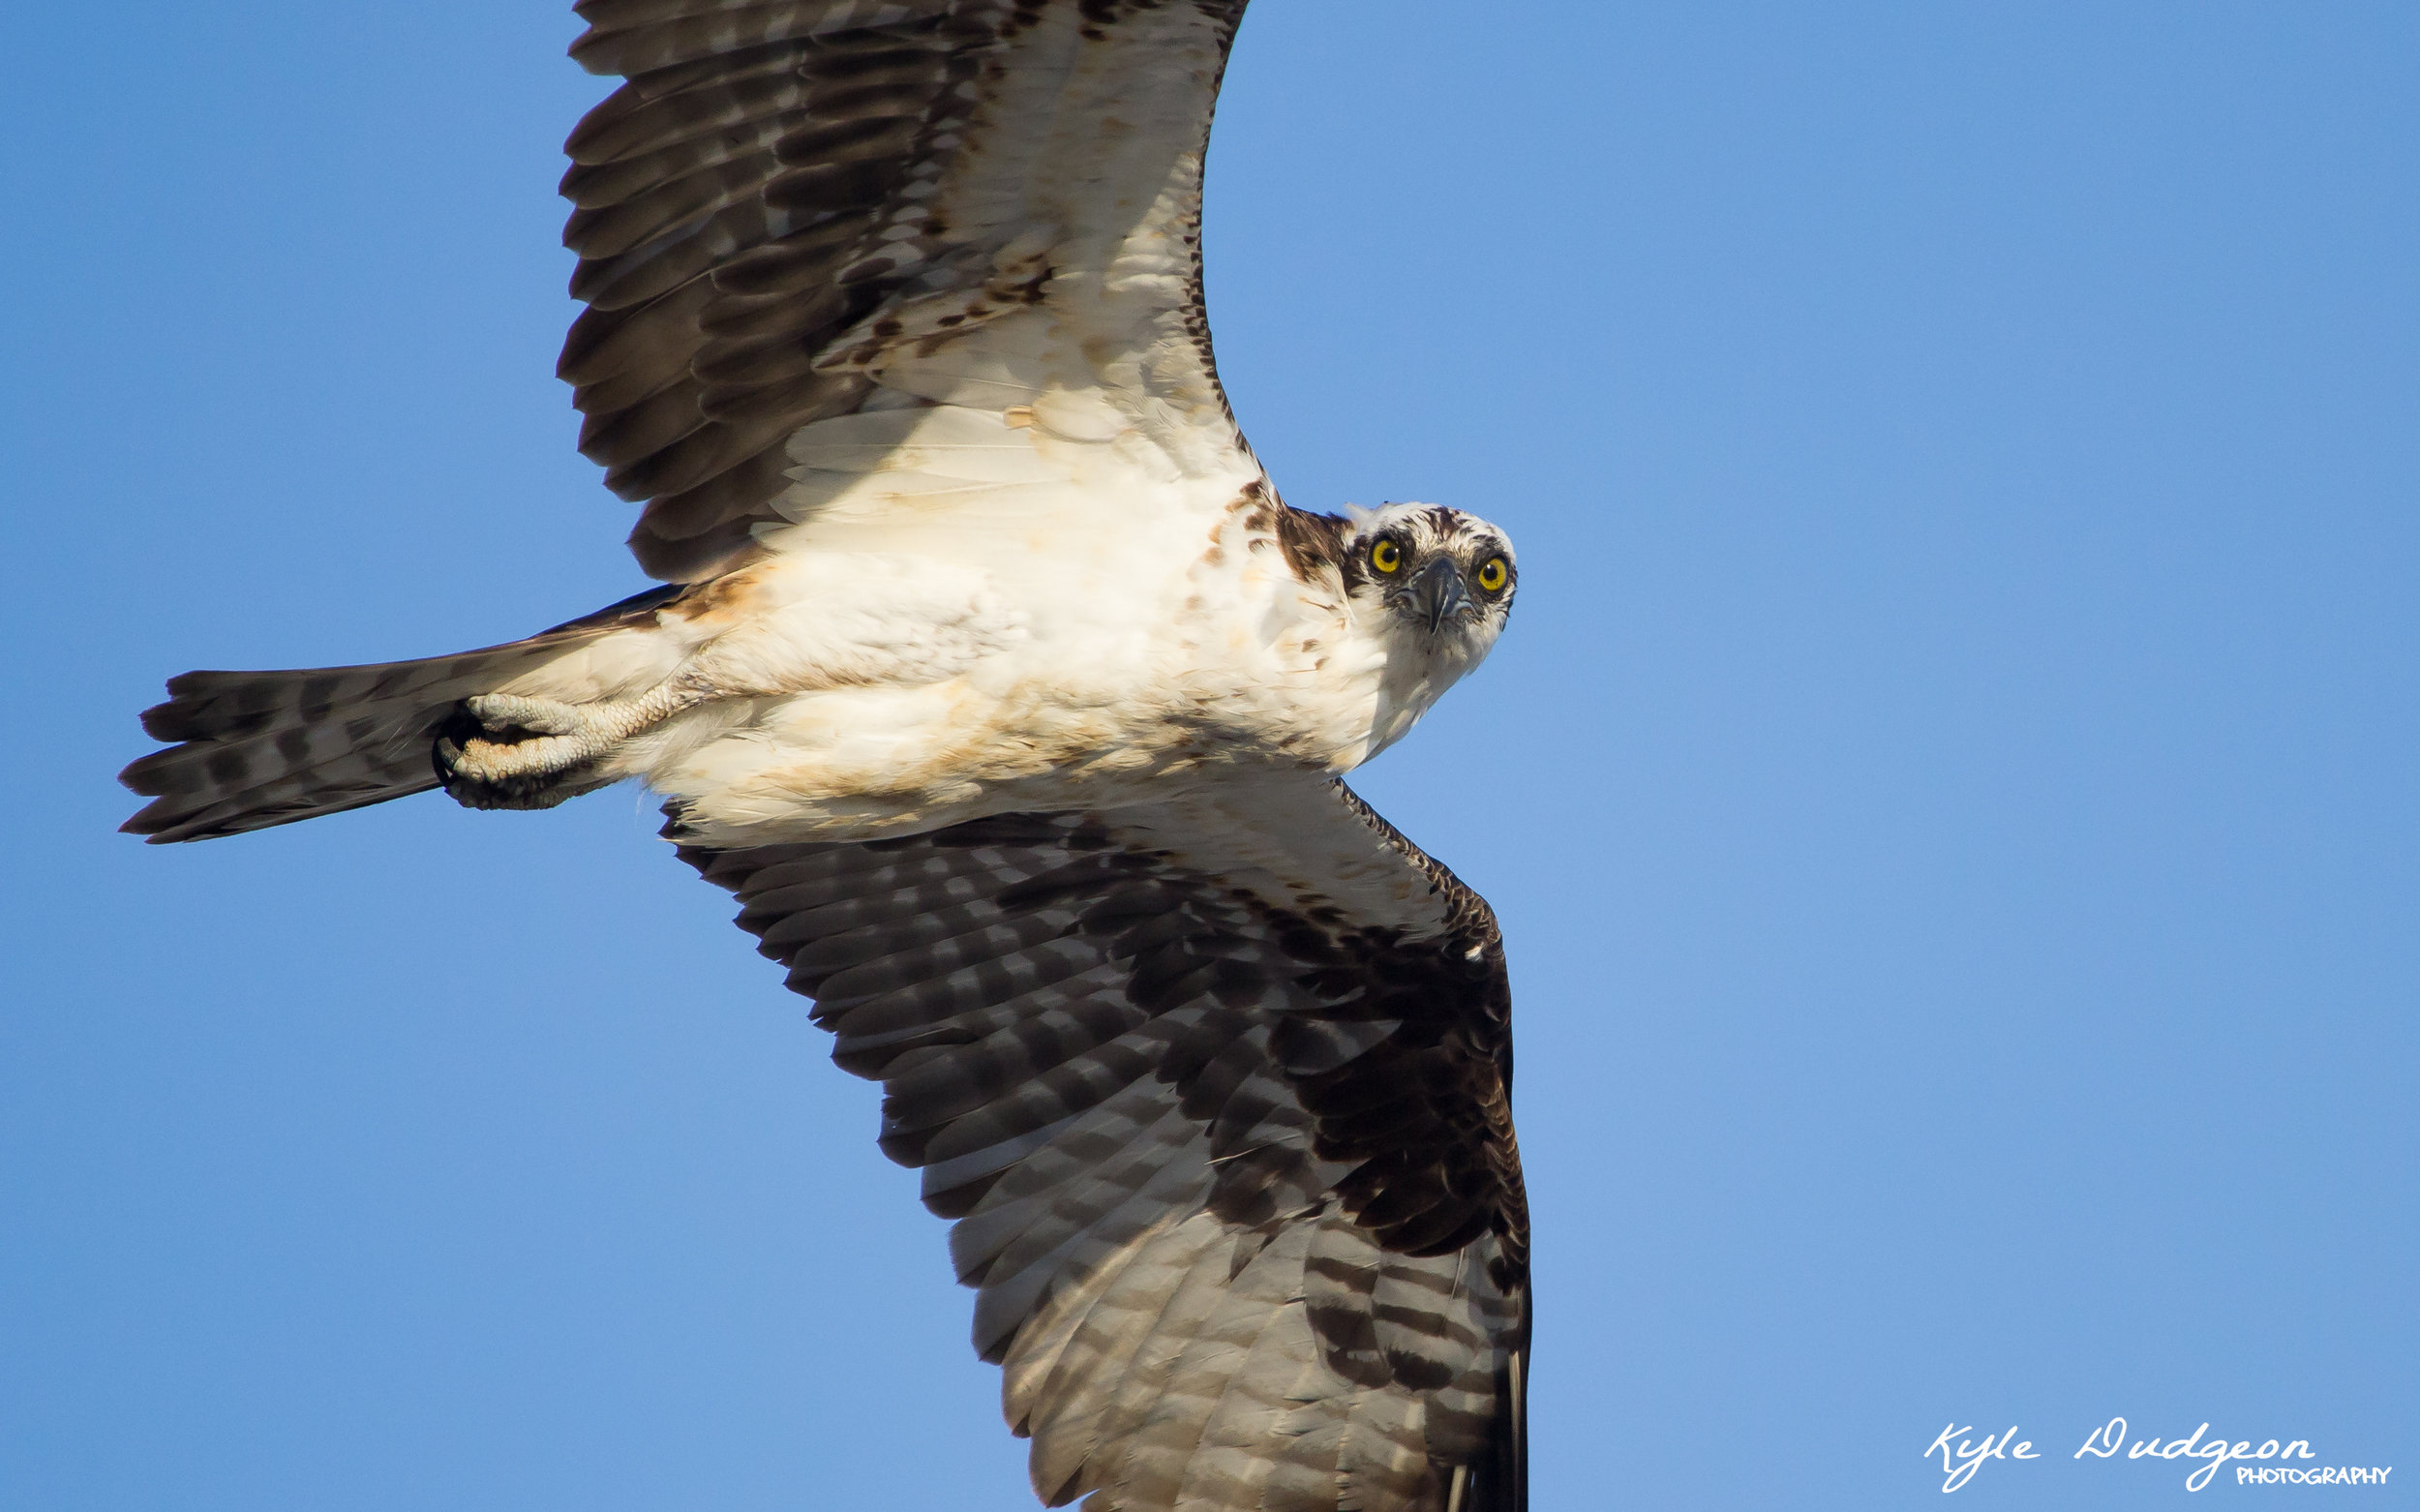 Some of you may recognize this as the profile picture for my Facebook page. Osprey at Barnegat Light SP. 7/12/16.